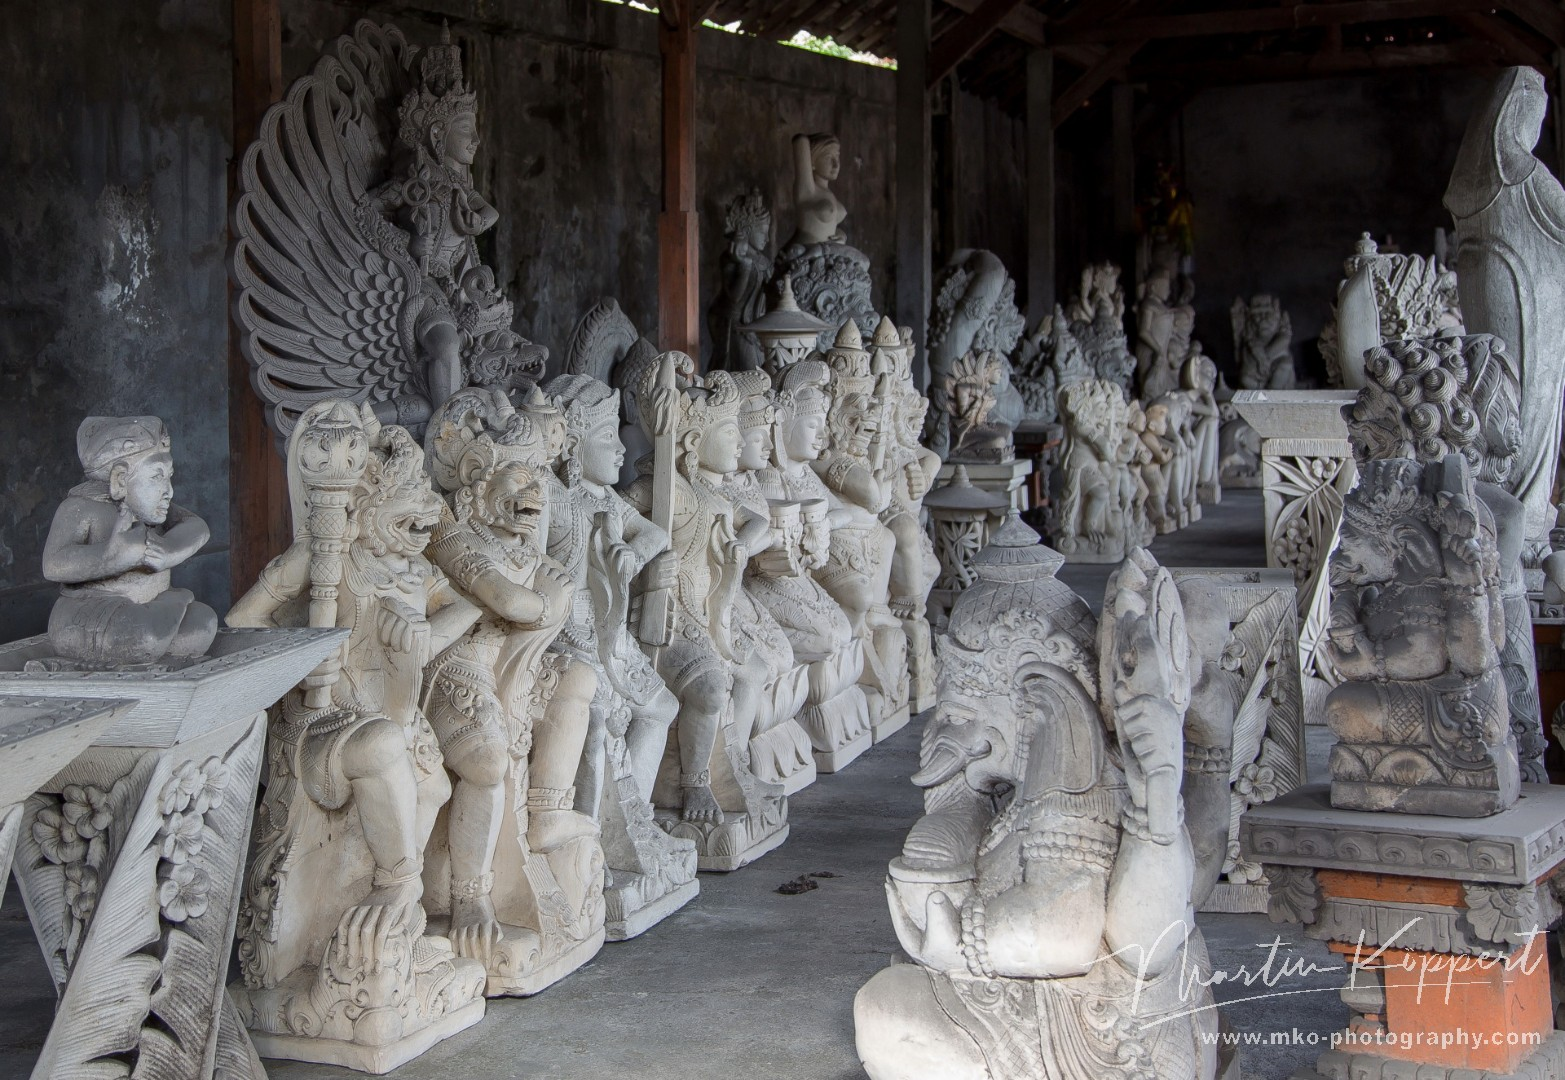 8R2A0008 Handicraft Stone Carving Ubud South Bali Indonesia